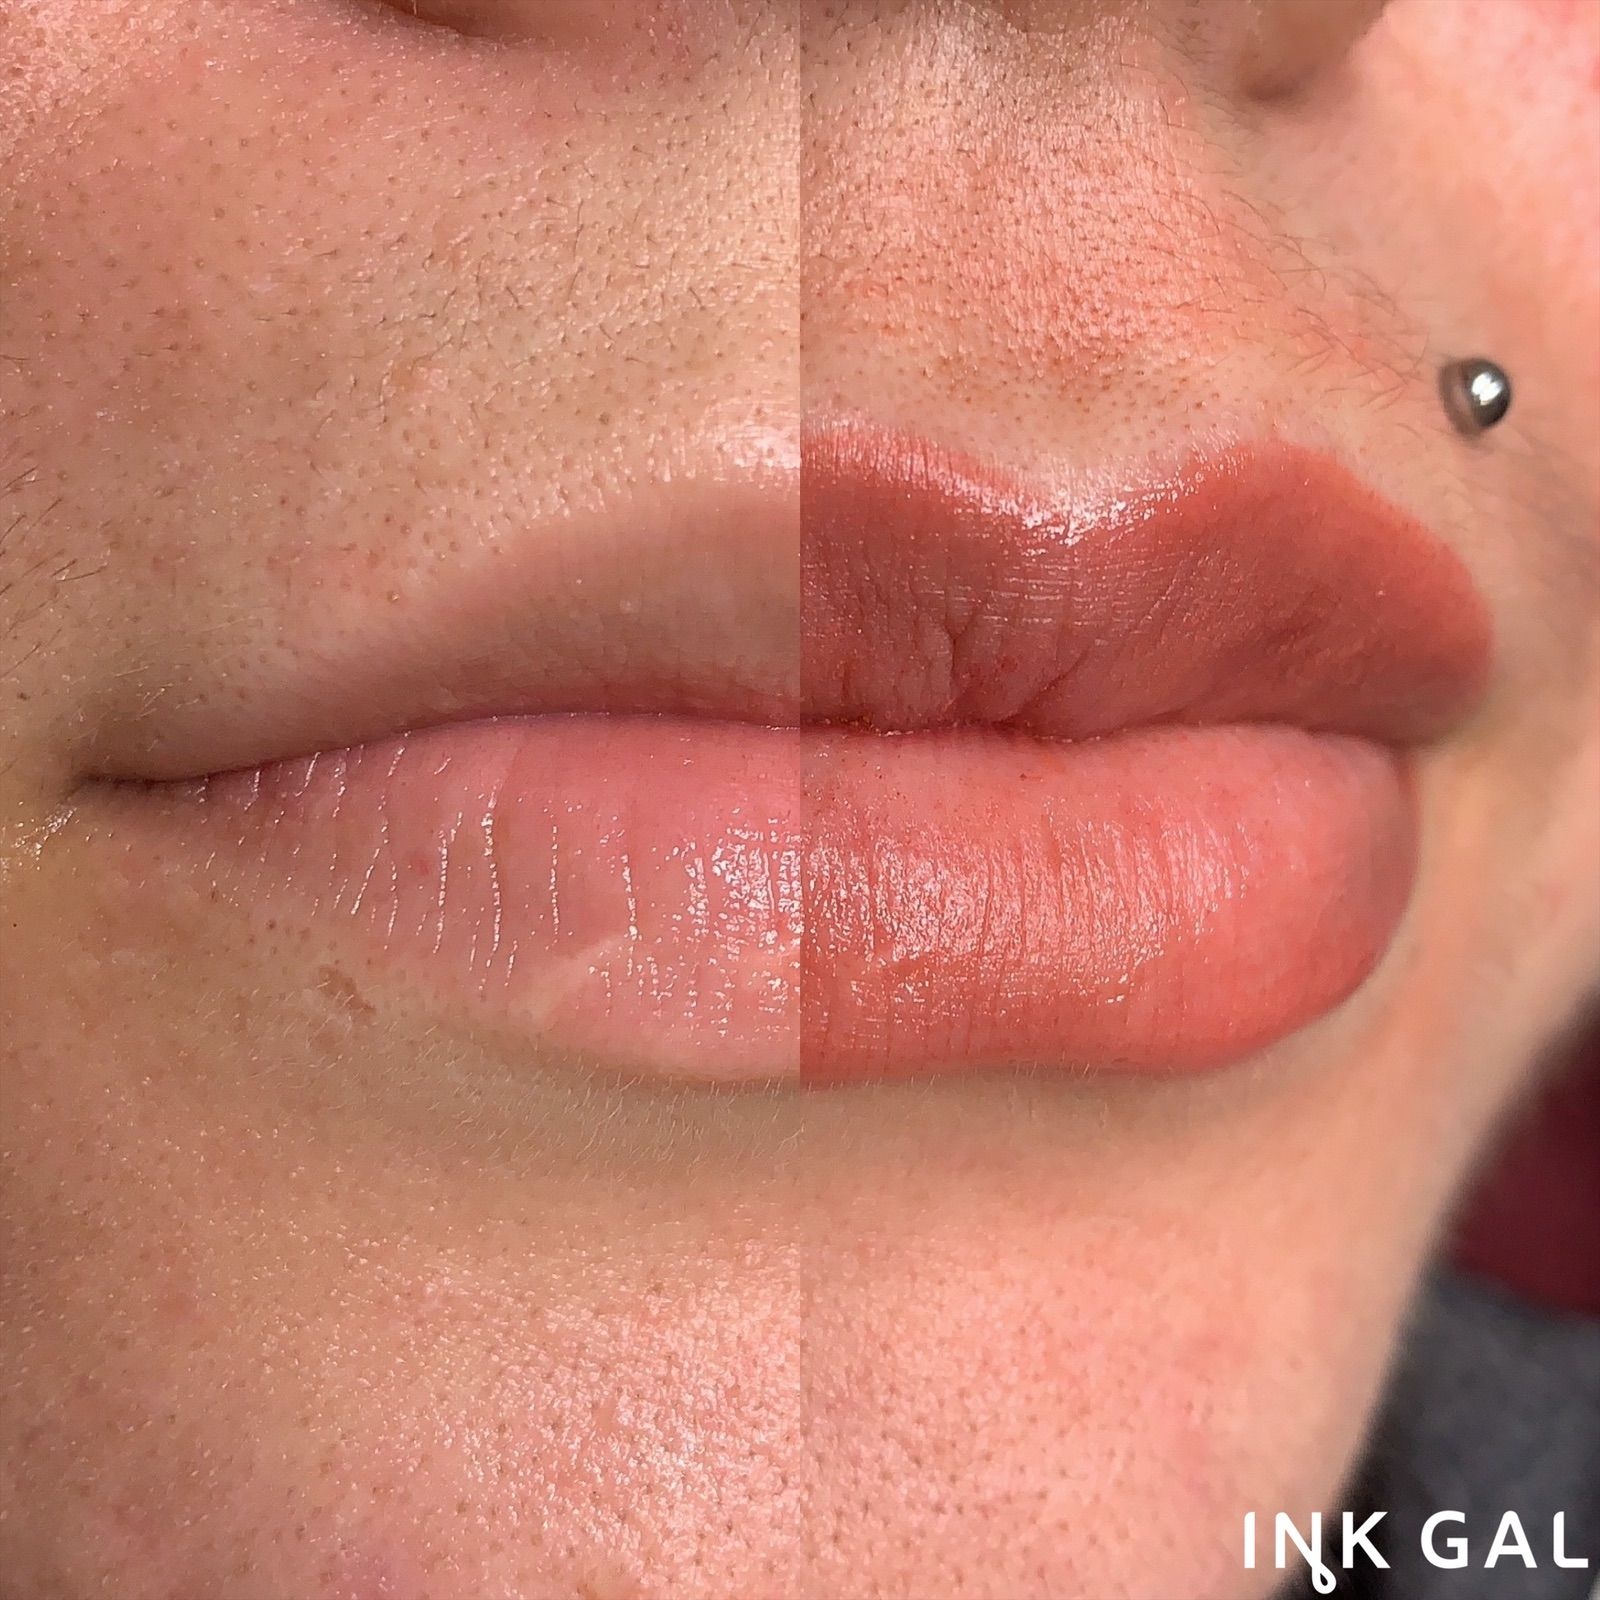 Aka Lip Blushing #lipblush #lipblushing #liptattoo #lips #cosmetictattoo #tattoo #makeup #permanentmakeup